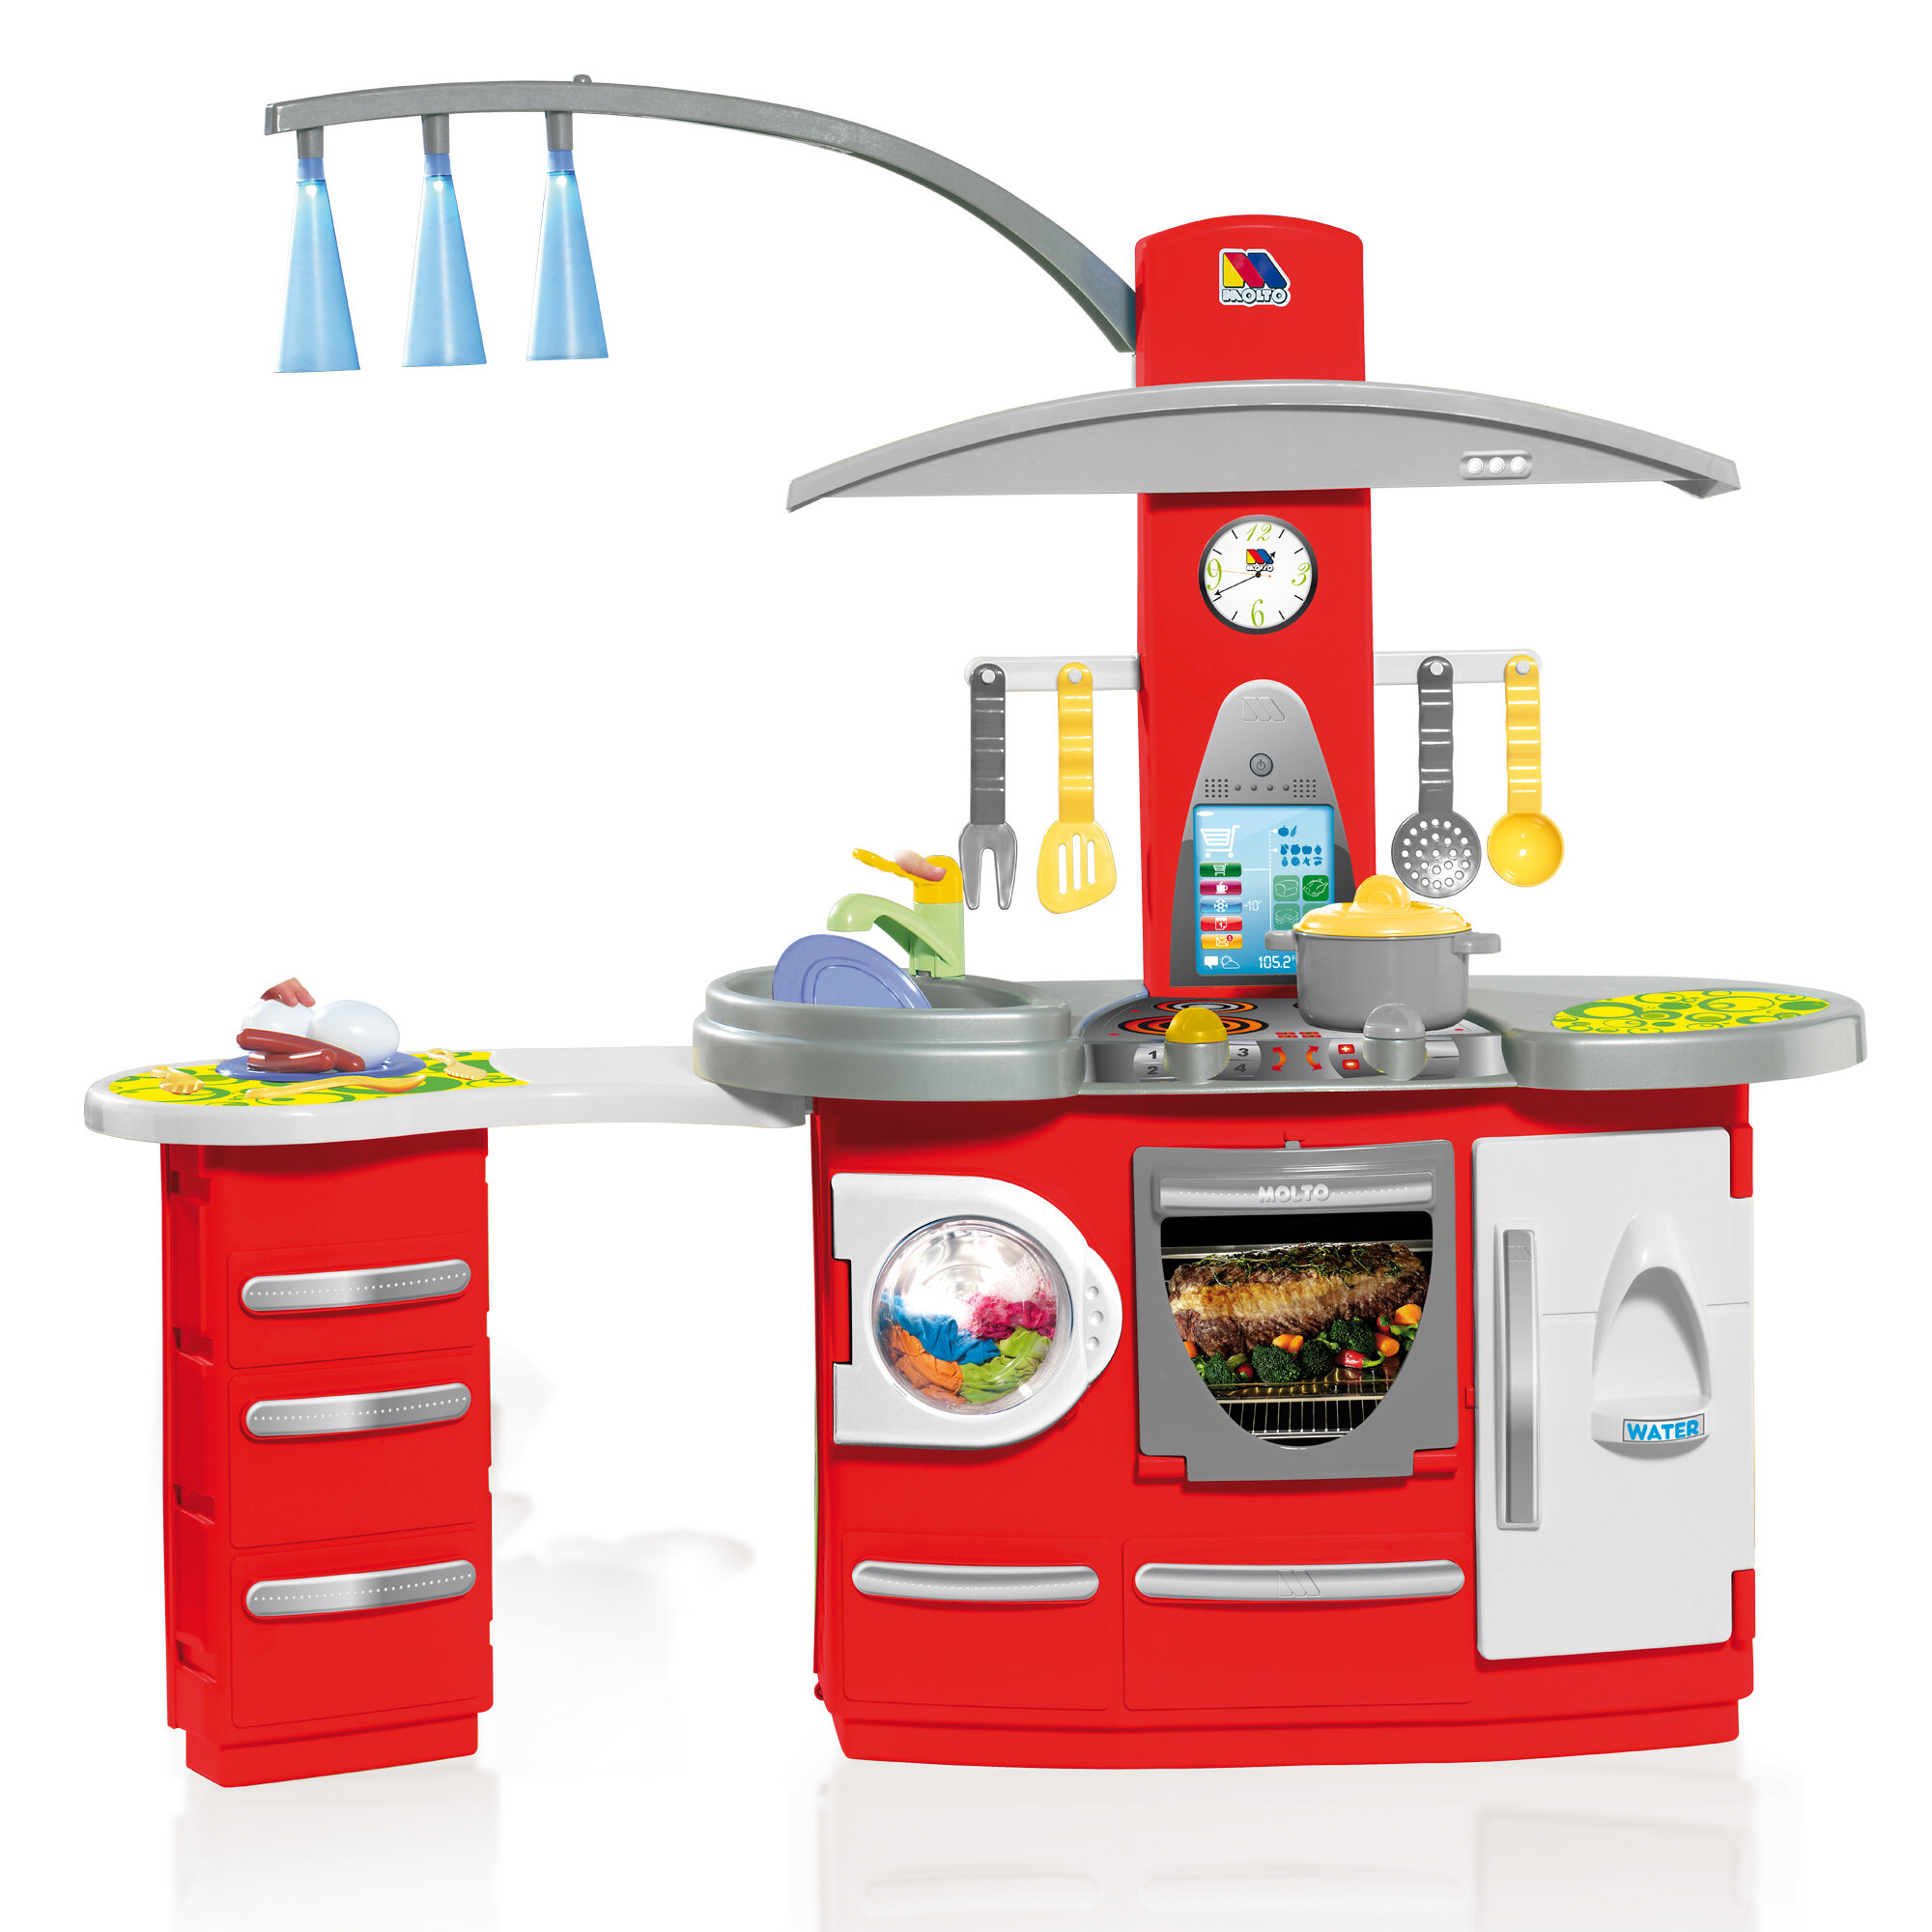 Complete Electronic Kitchen Set